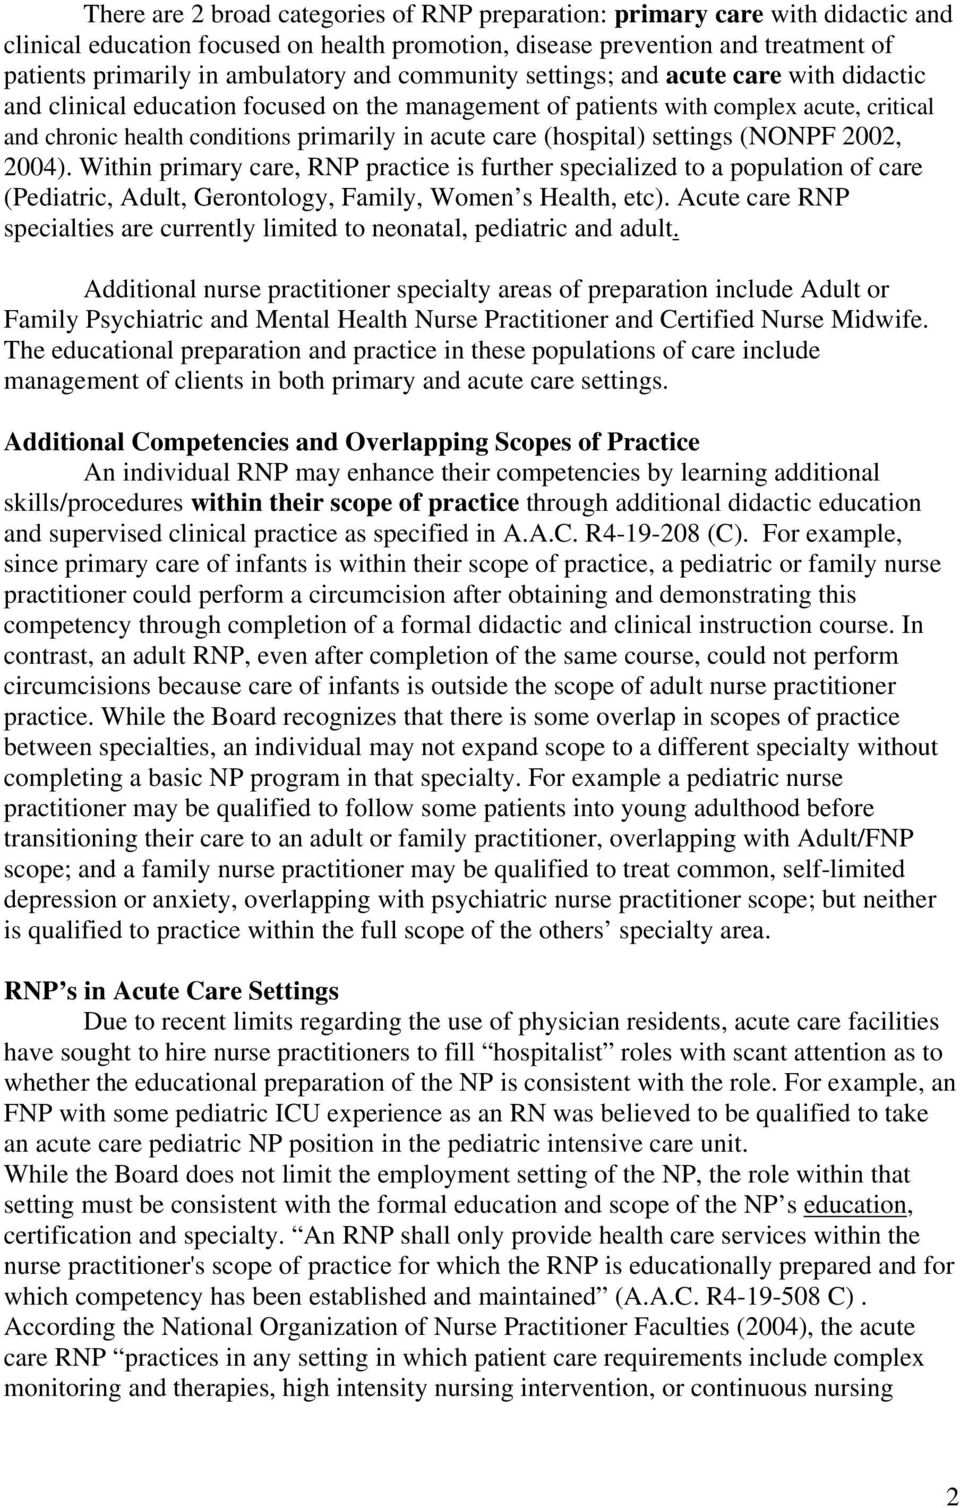 (hospital) settings (NONPF 2002, 2004). Within primary care, RNP practice is further specialized to a population of care (Pediatric, Adult, Gerontology, Family, Women s Health, etc).